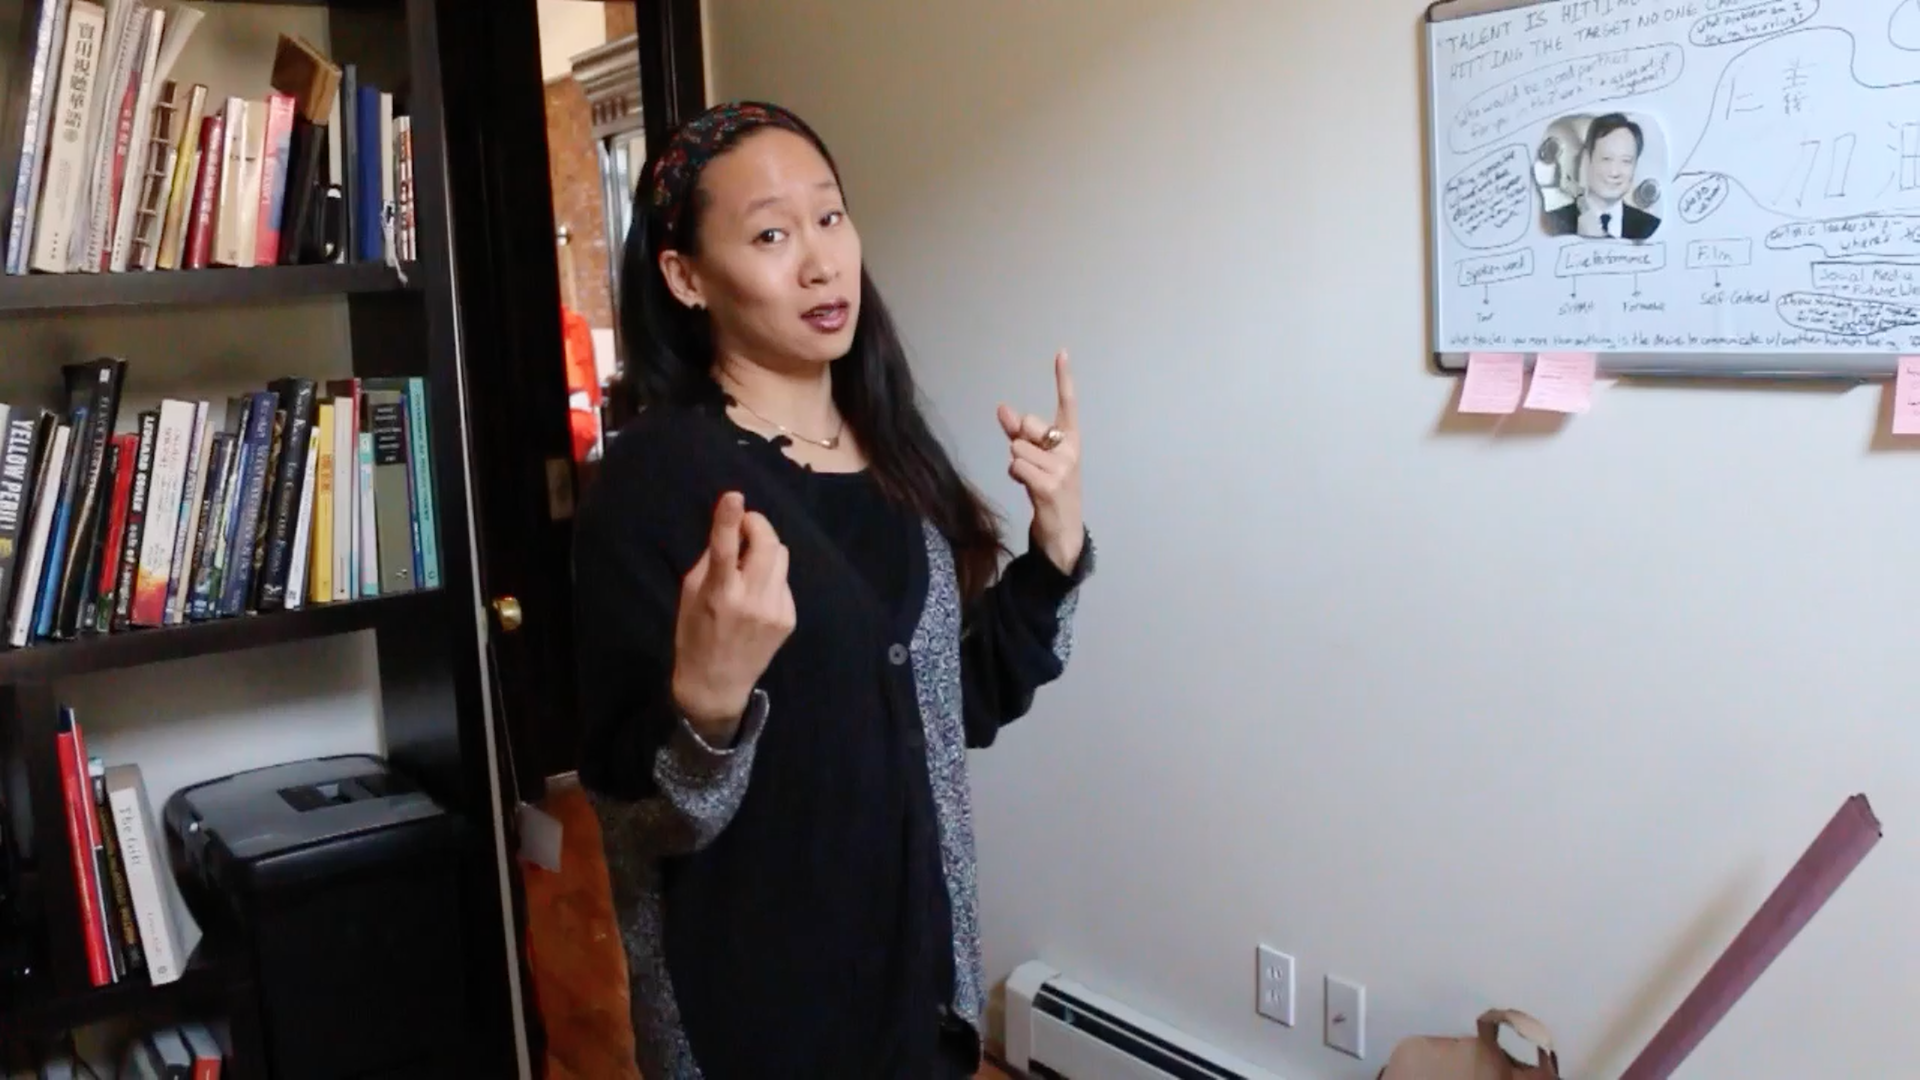 Kelly Tsai has used spoken word poetry to enter the realms of theater, fine art, film, dance and more.